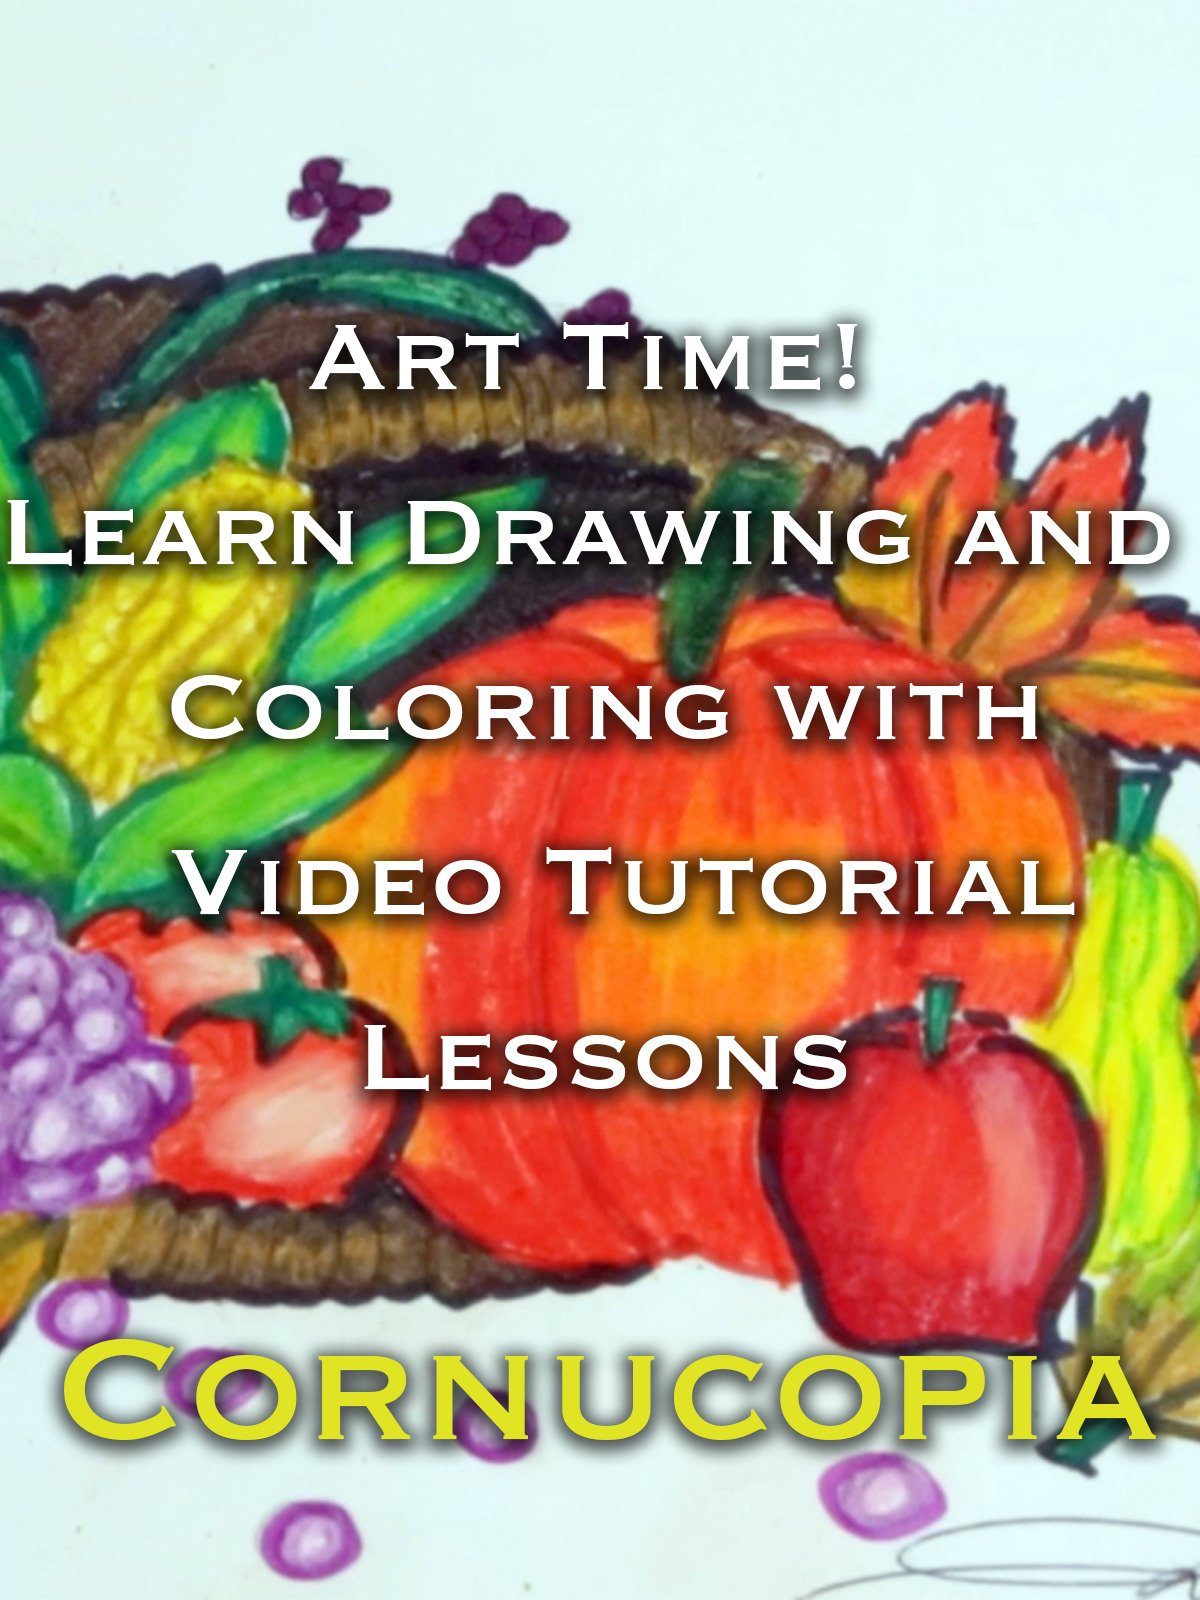 Art Time! Learn Drawing and Coloring with Video Tutorial Lessons Cornucopia